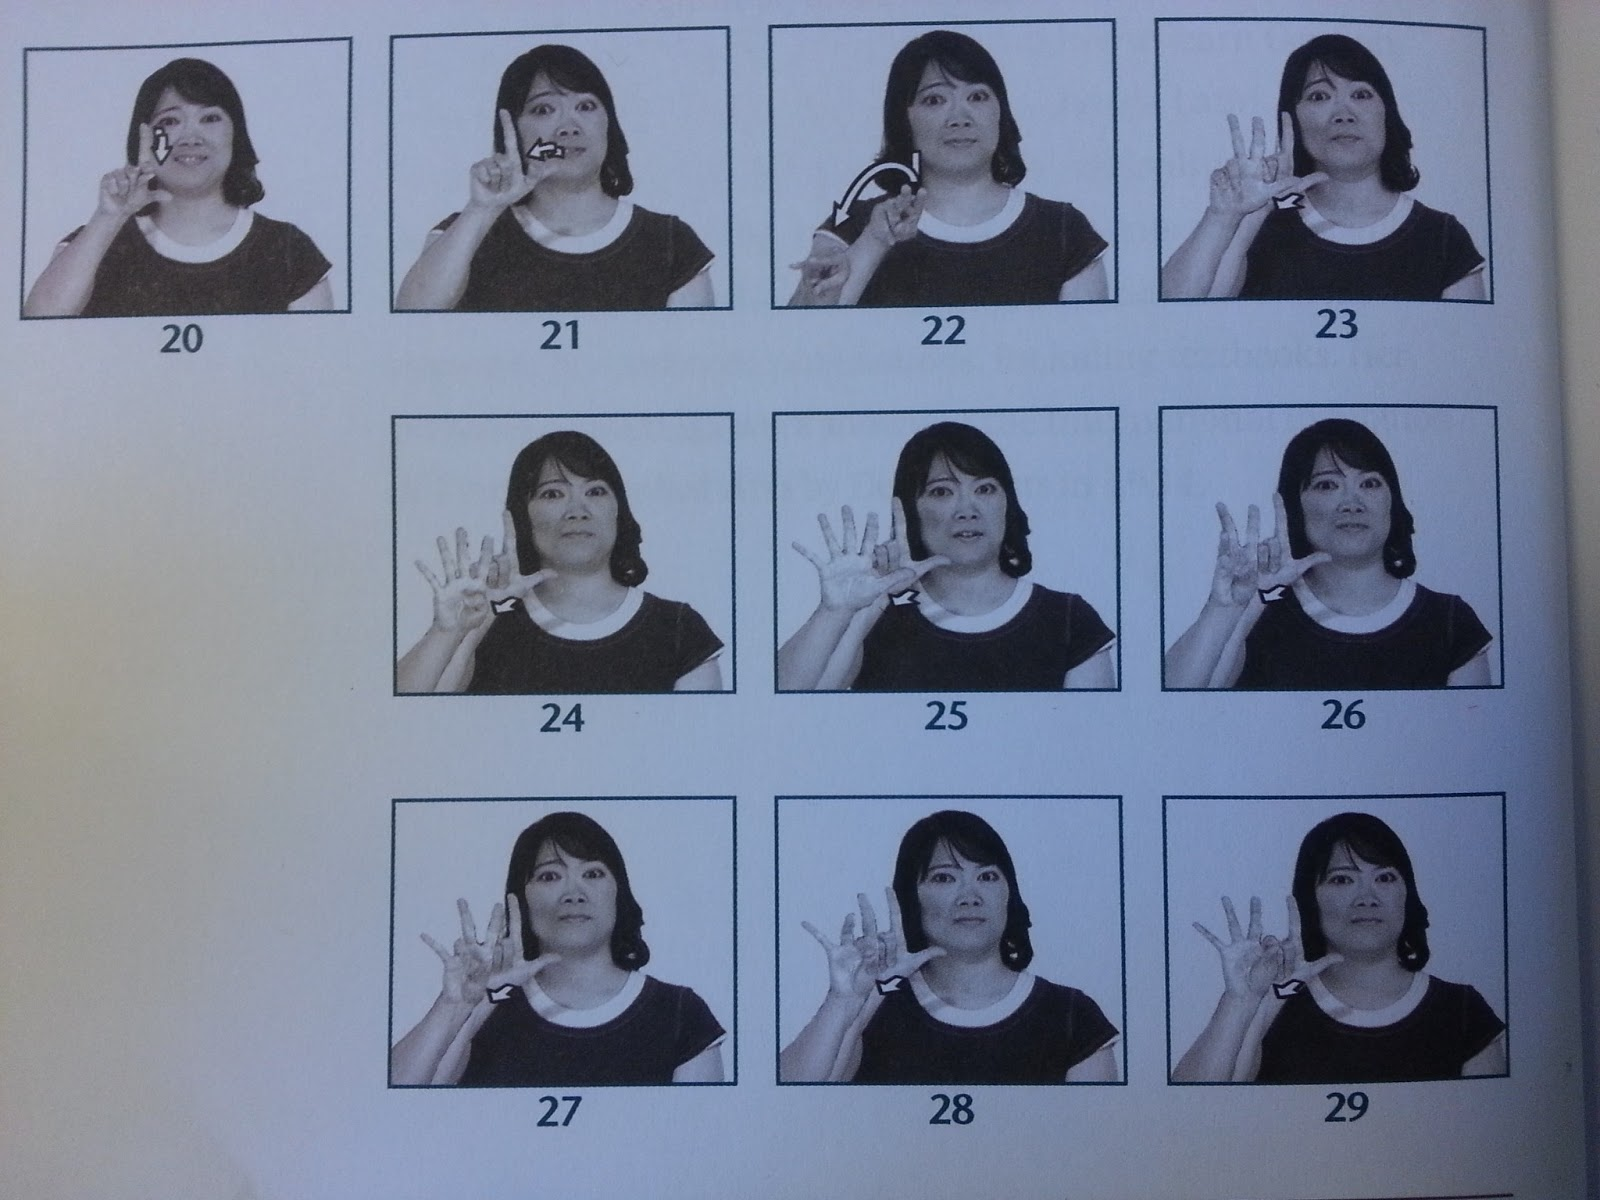 how to sign write in asl